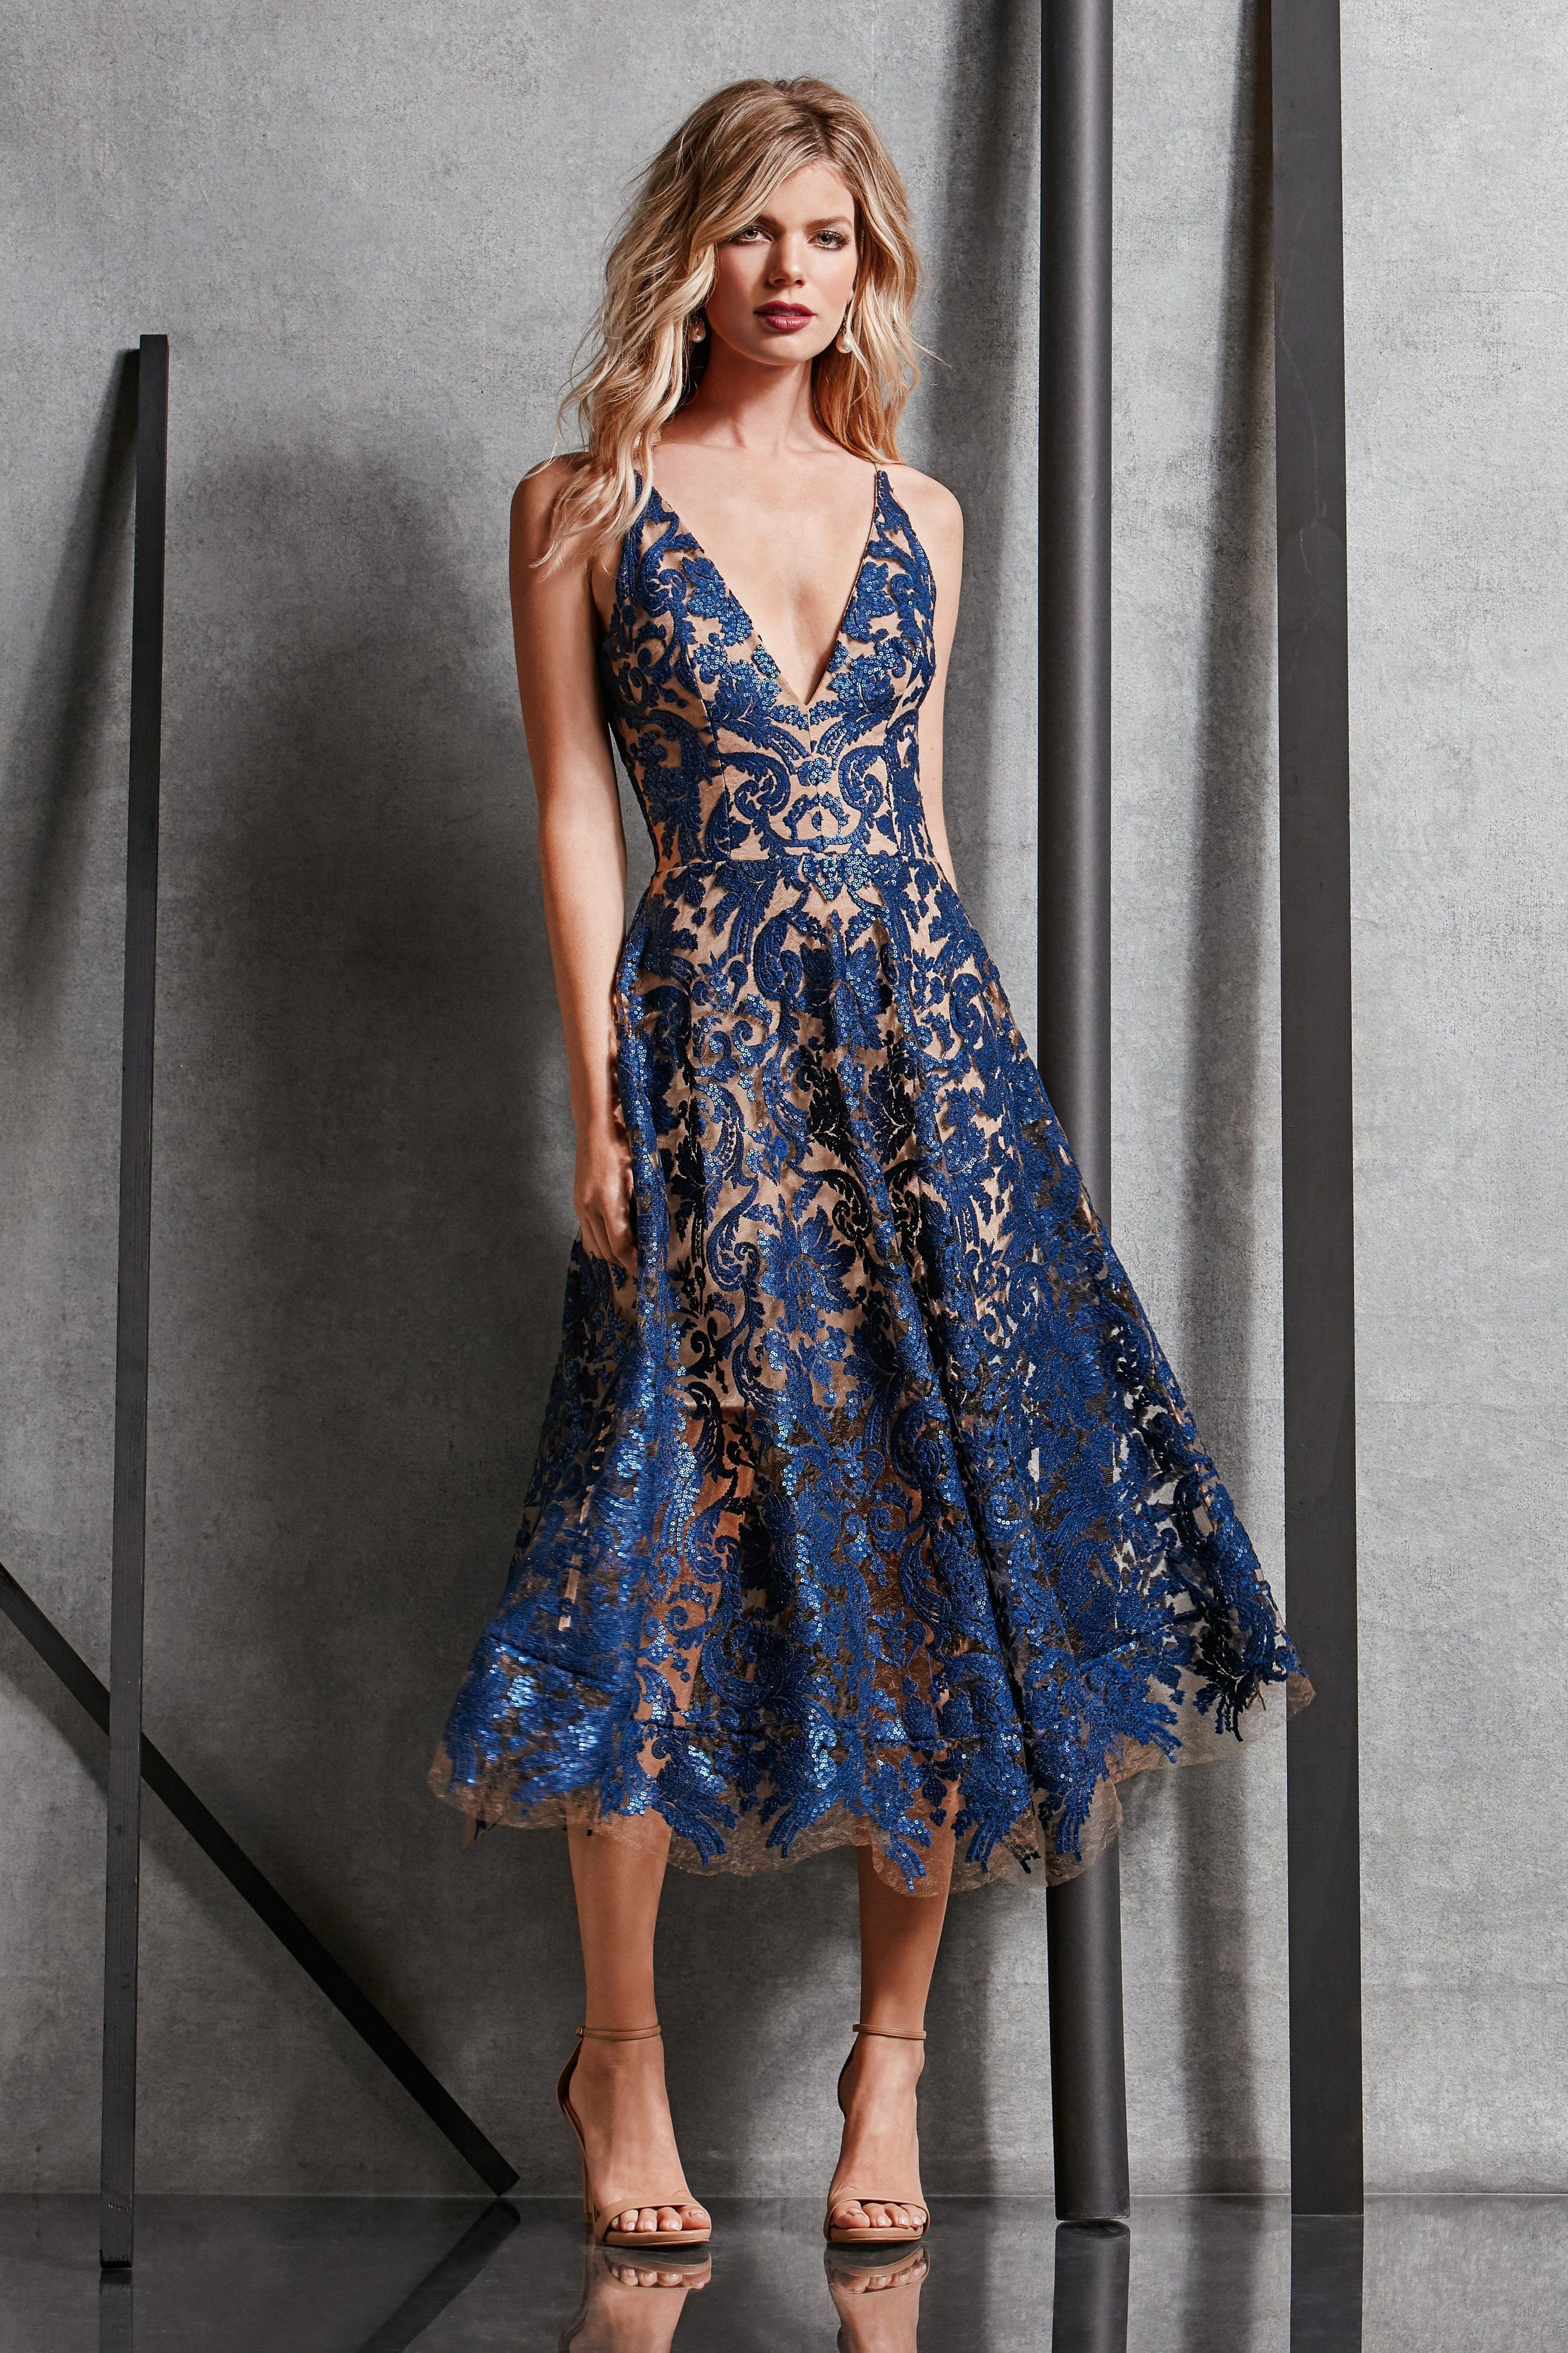 62fde94b677e7 Blair Sequin Lace Fit and Flare Midi Dress - FINAL in 2019 | Boho ...